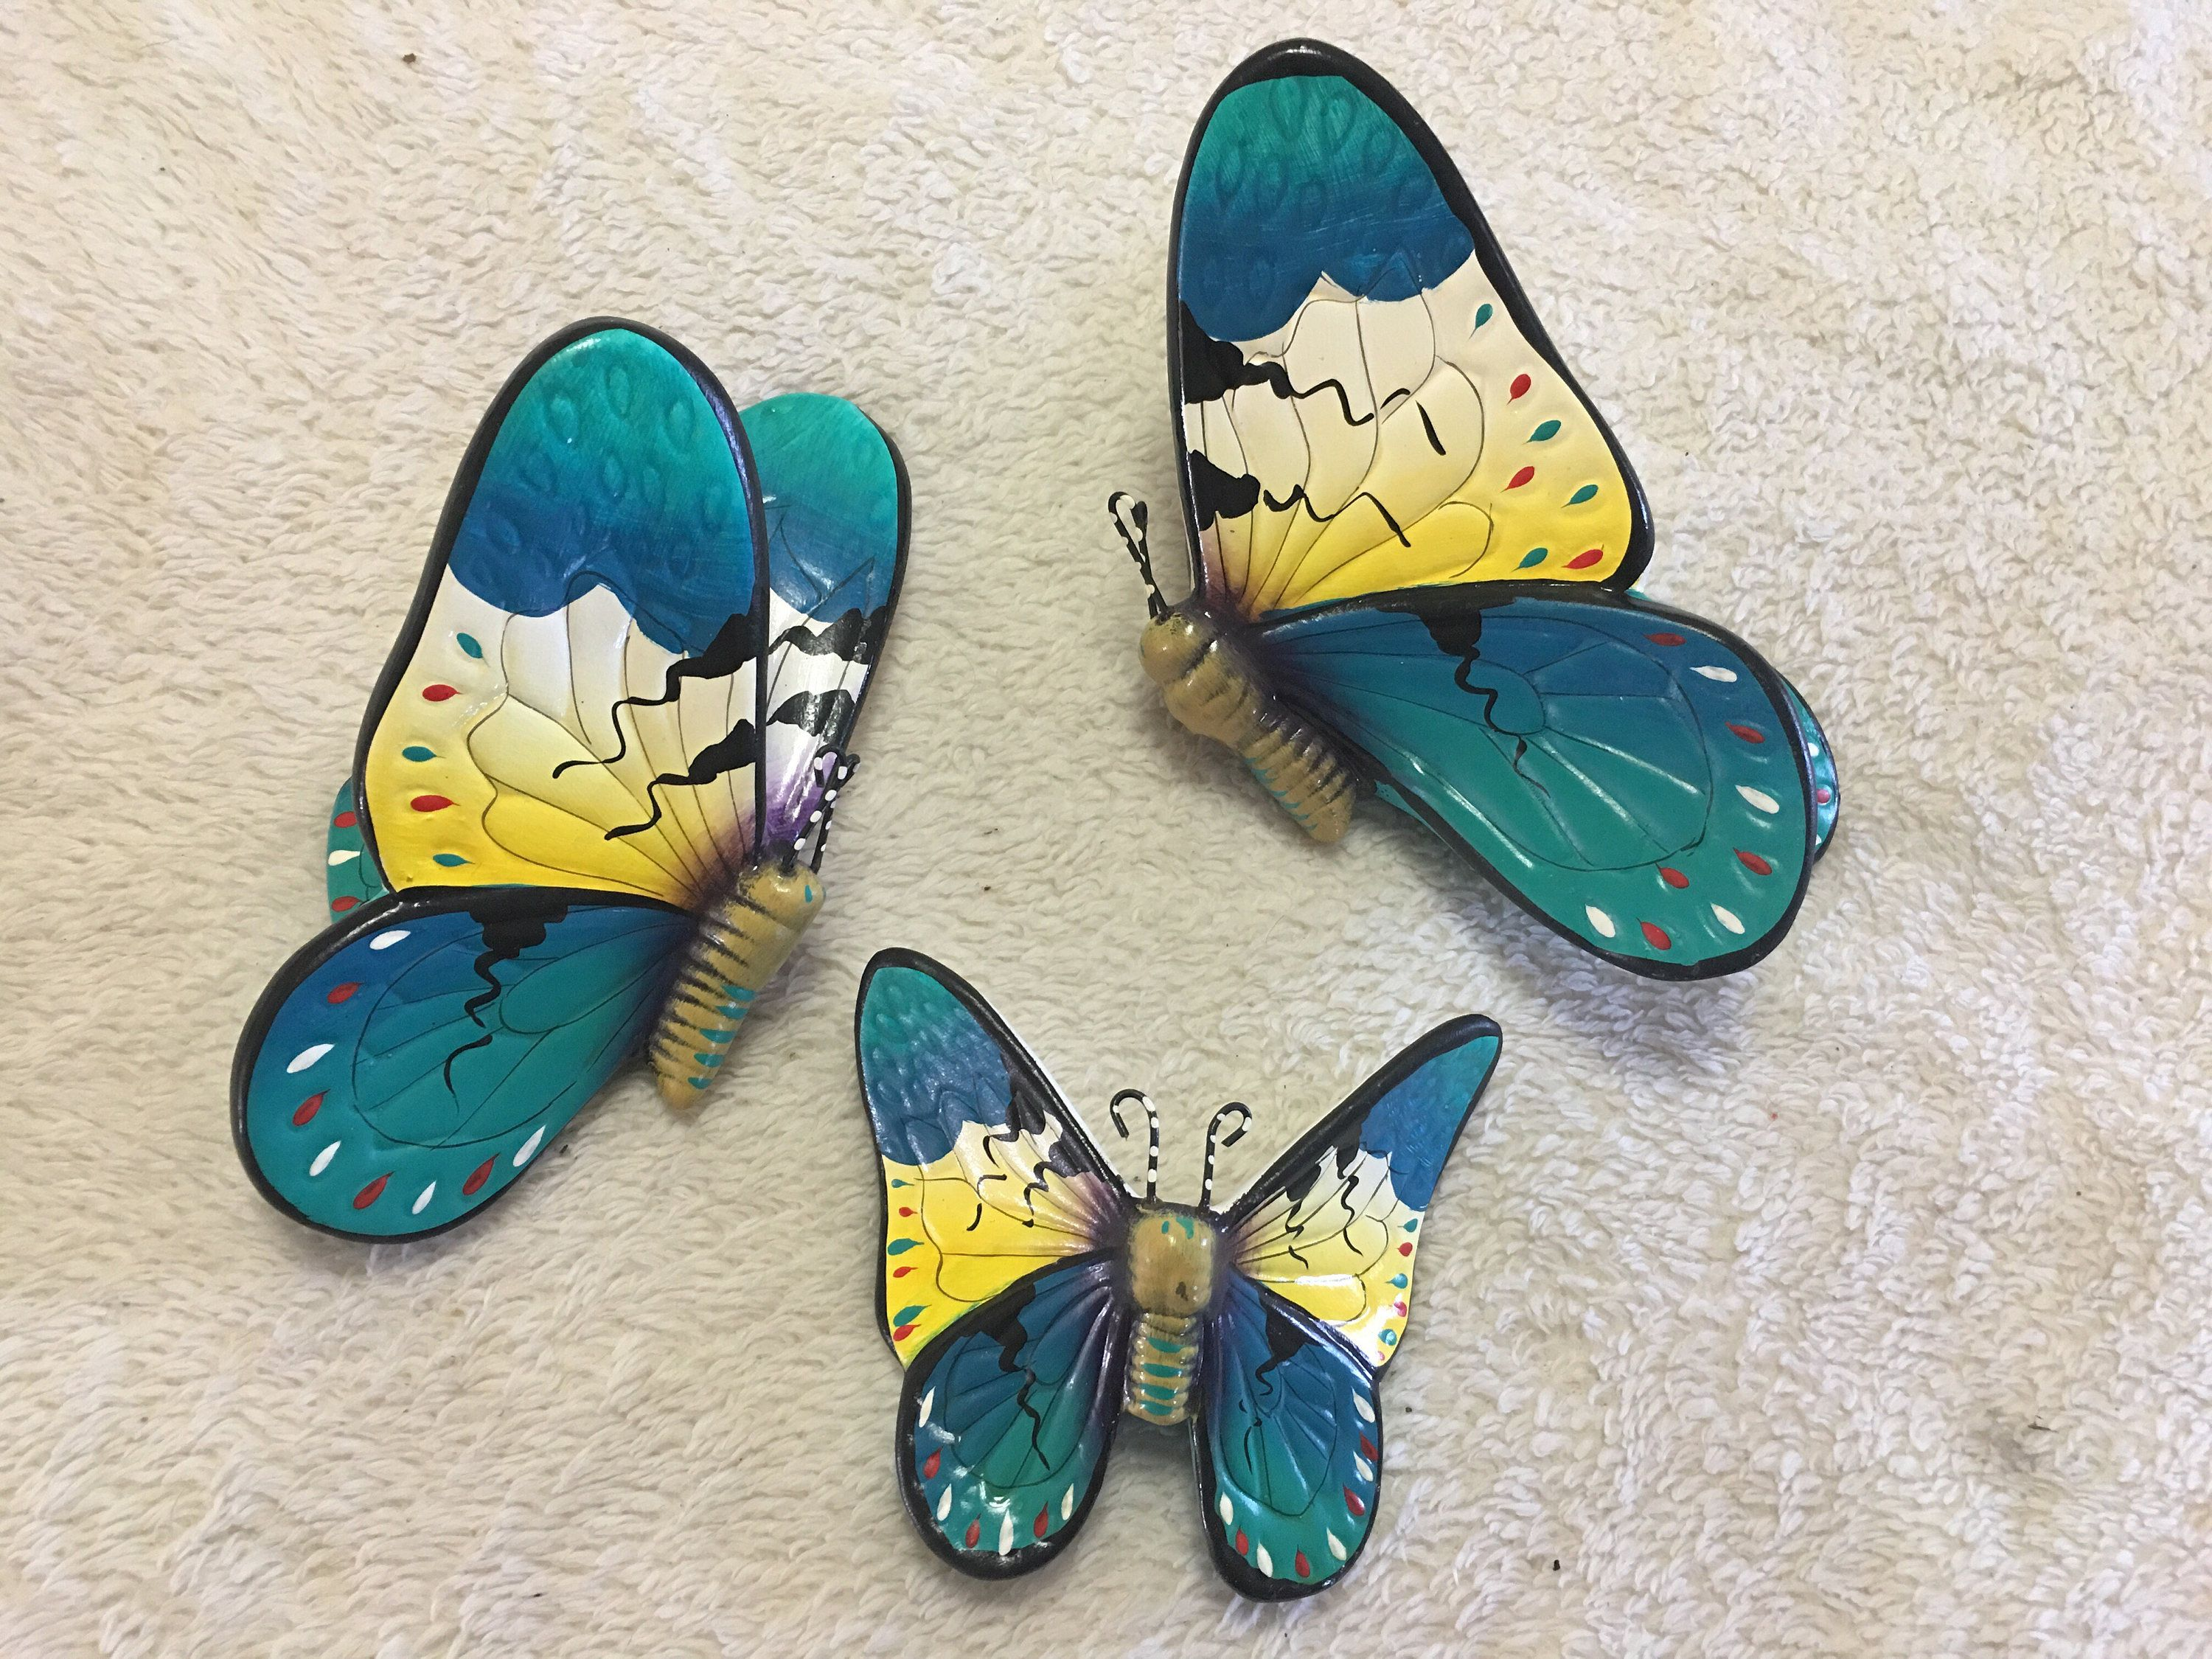 Butterflies / butterfly wall art/ ceramic butterfly / mariposas / hand painted butterflies / butterfly wall decor by AdellasPottery on Etsy